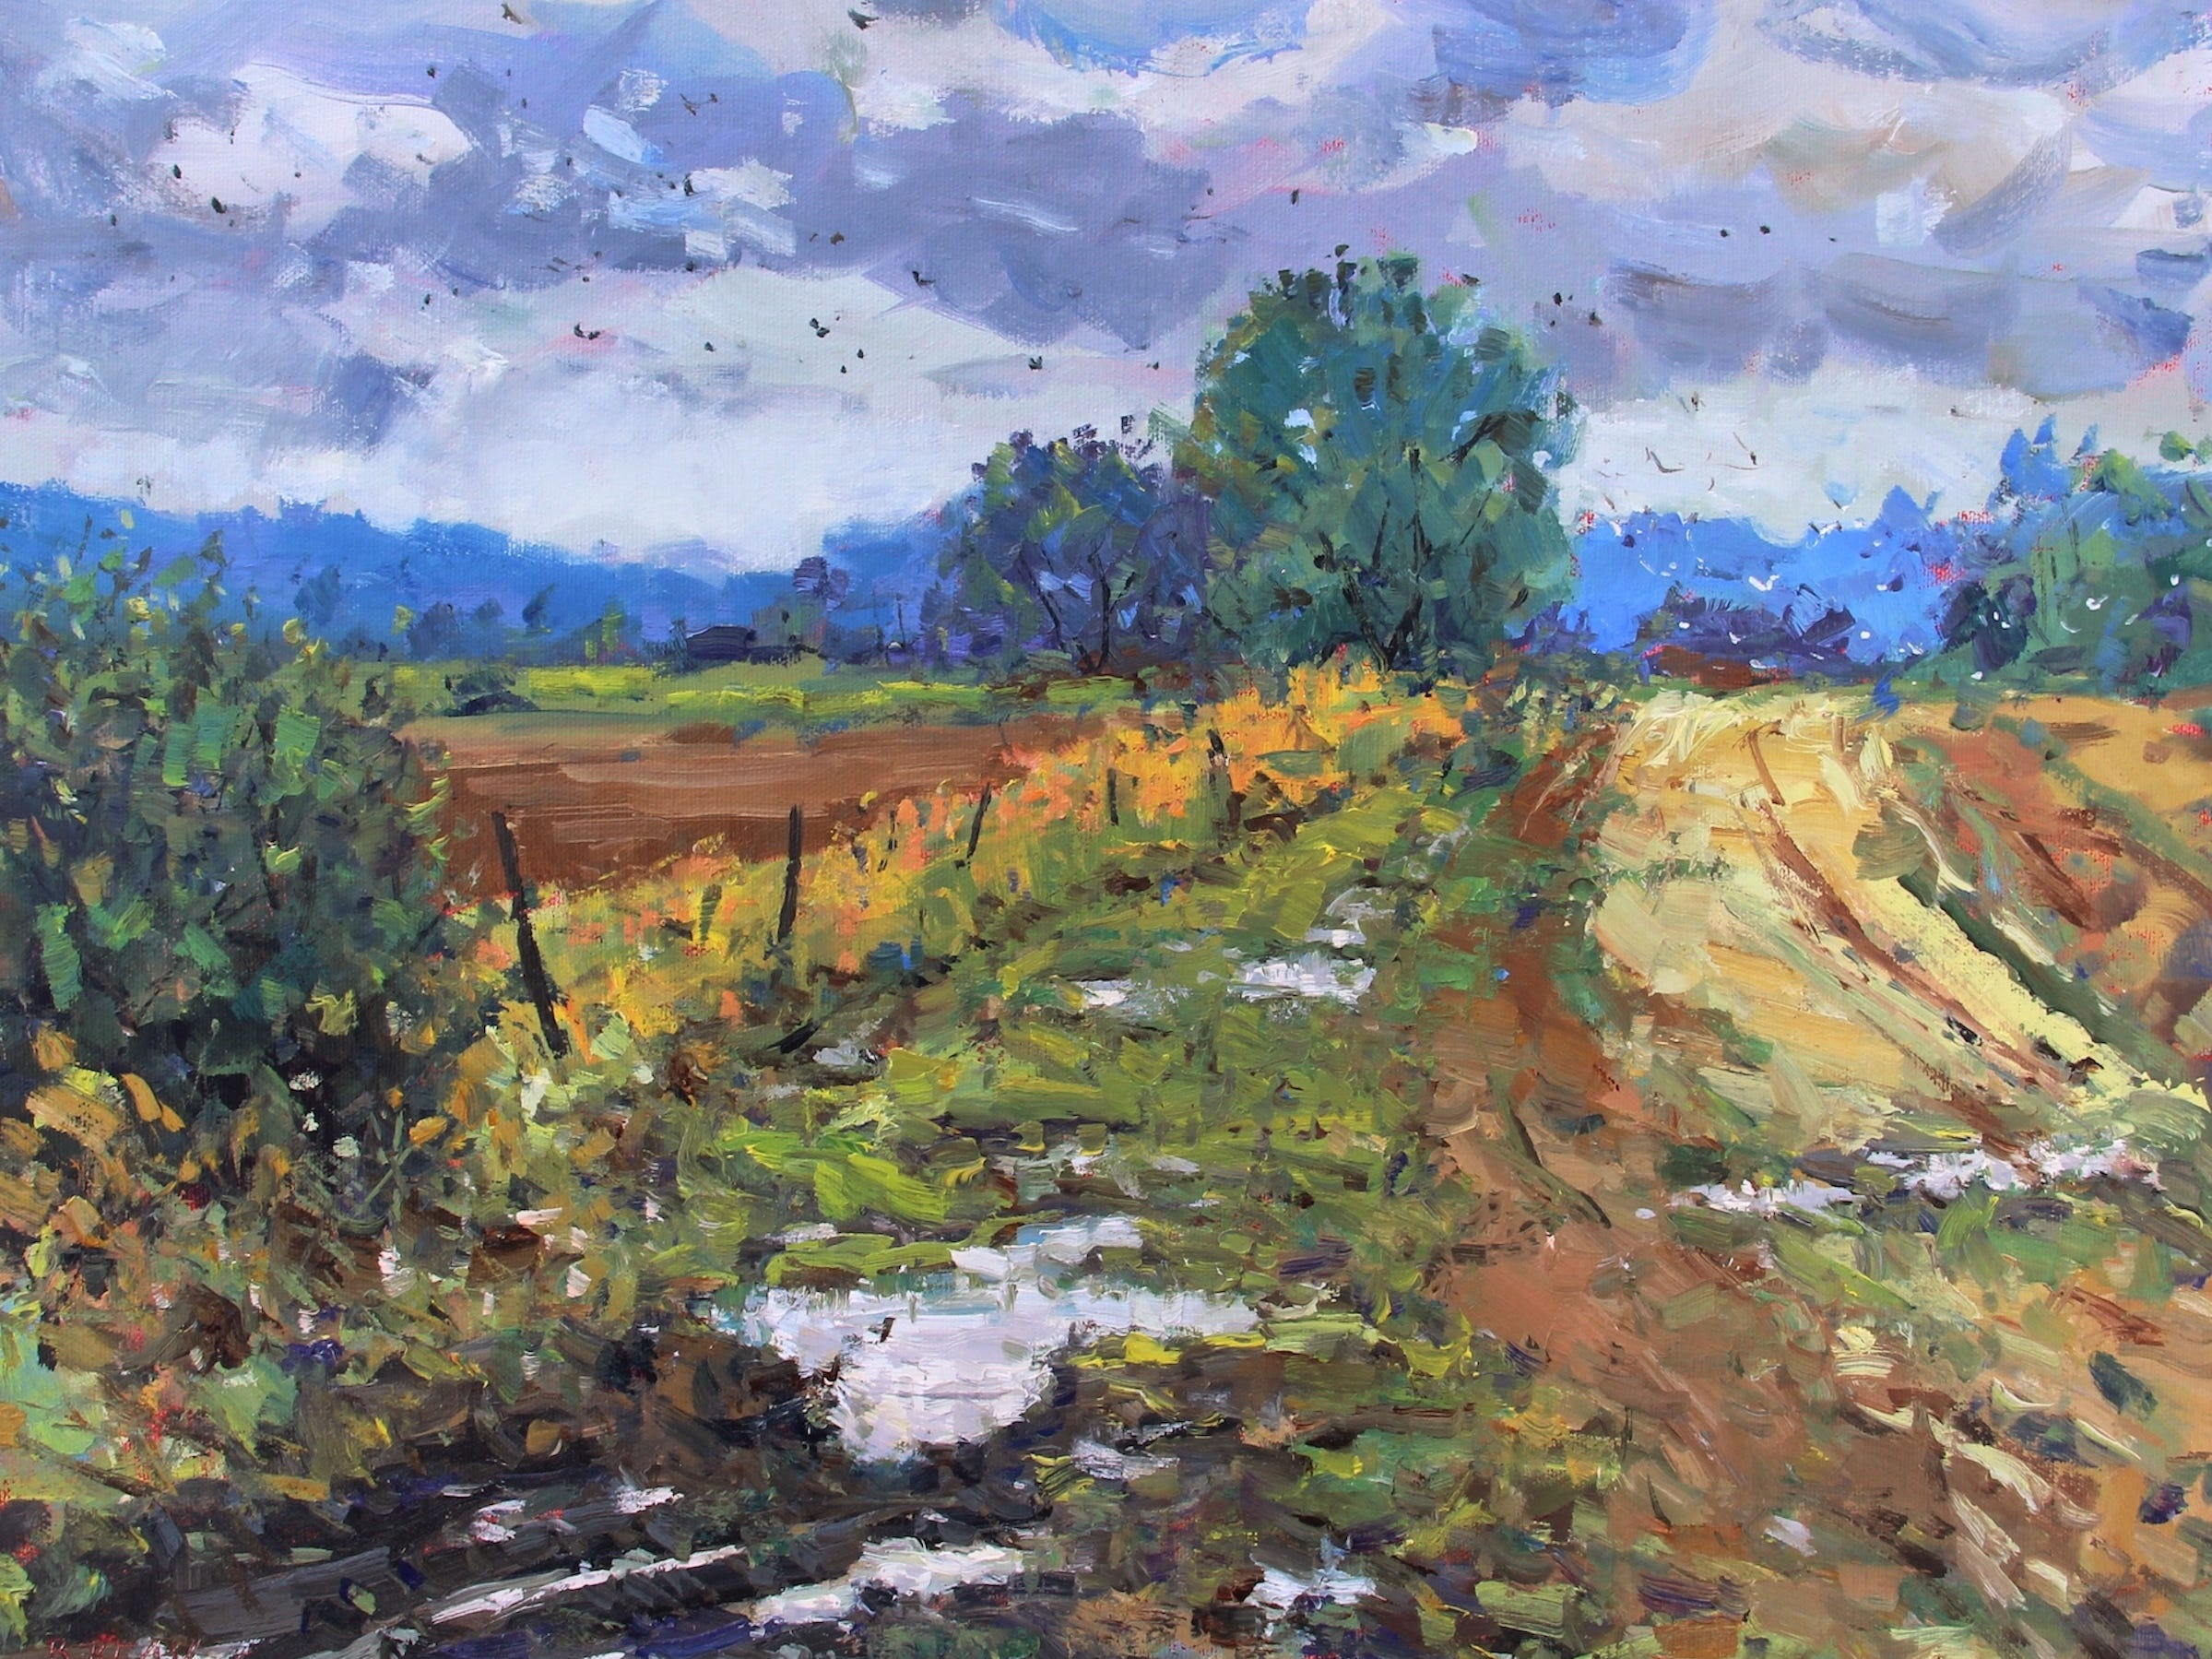 'Rain on the Farmland' by Manitowoc artist Bob Beck.